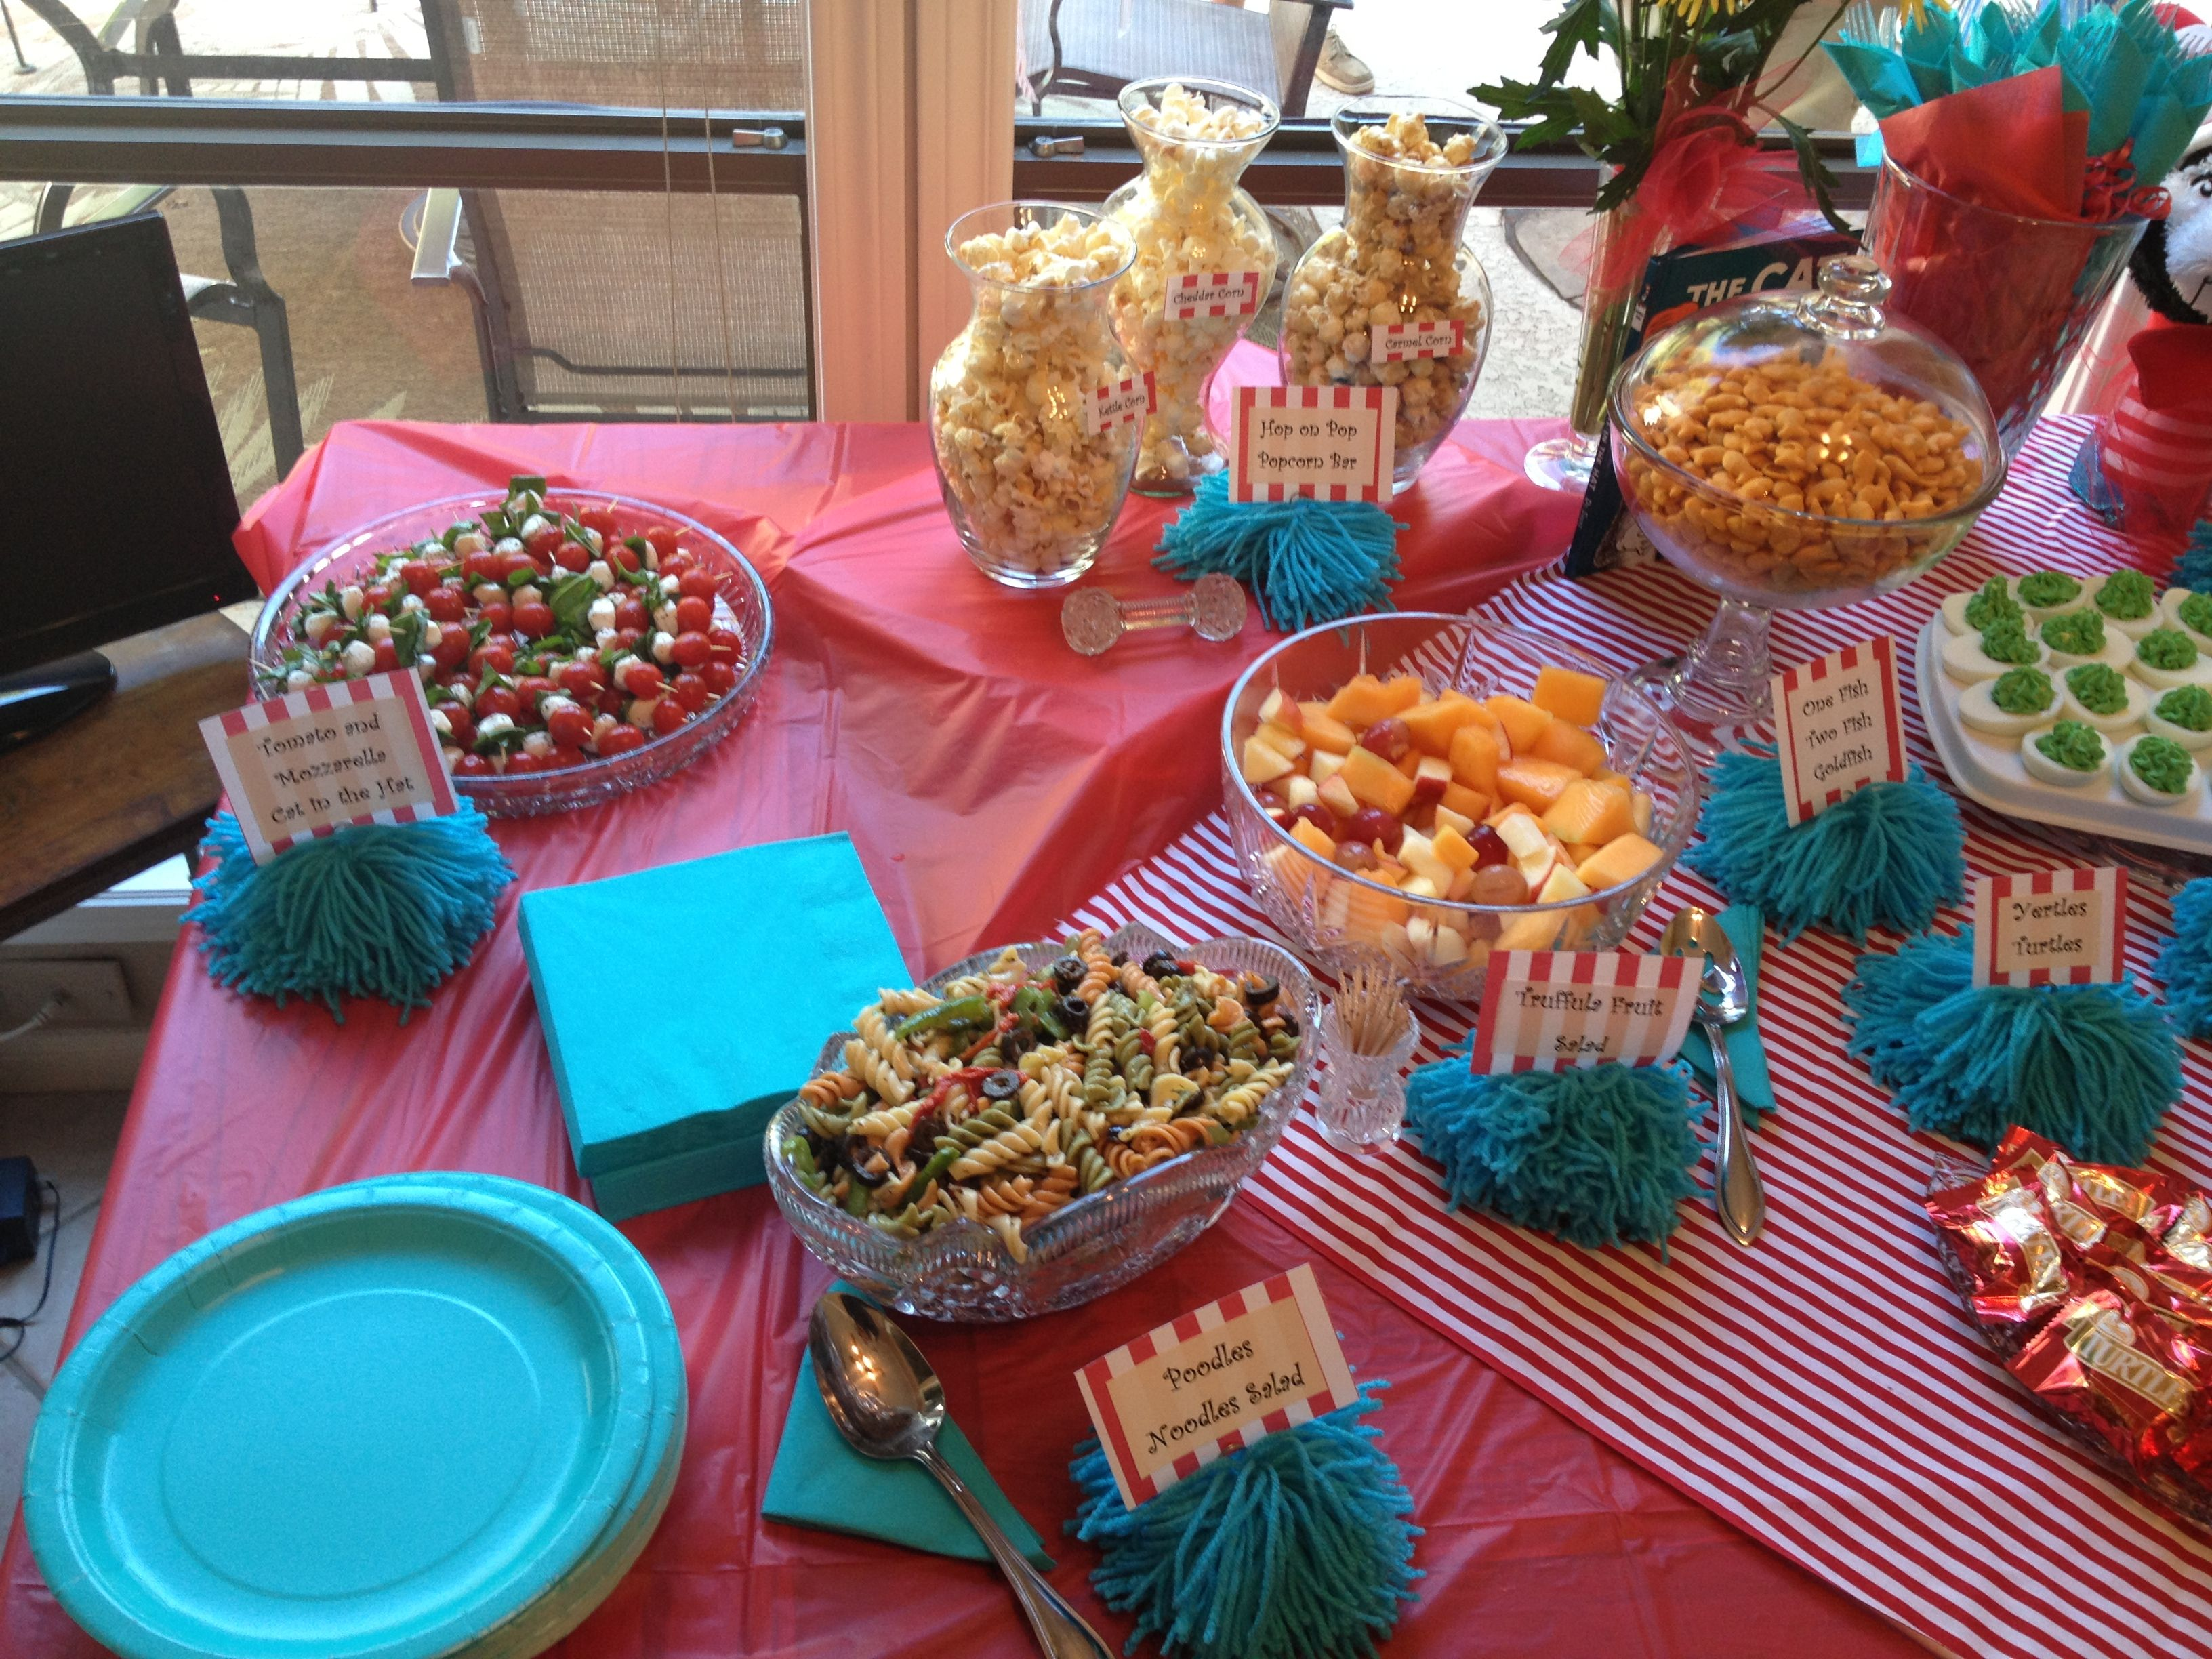 Dr Seuss Baby Shower Food Ideas Dr Seuss Pinterest Dr Seuss